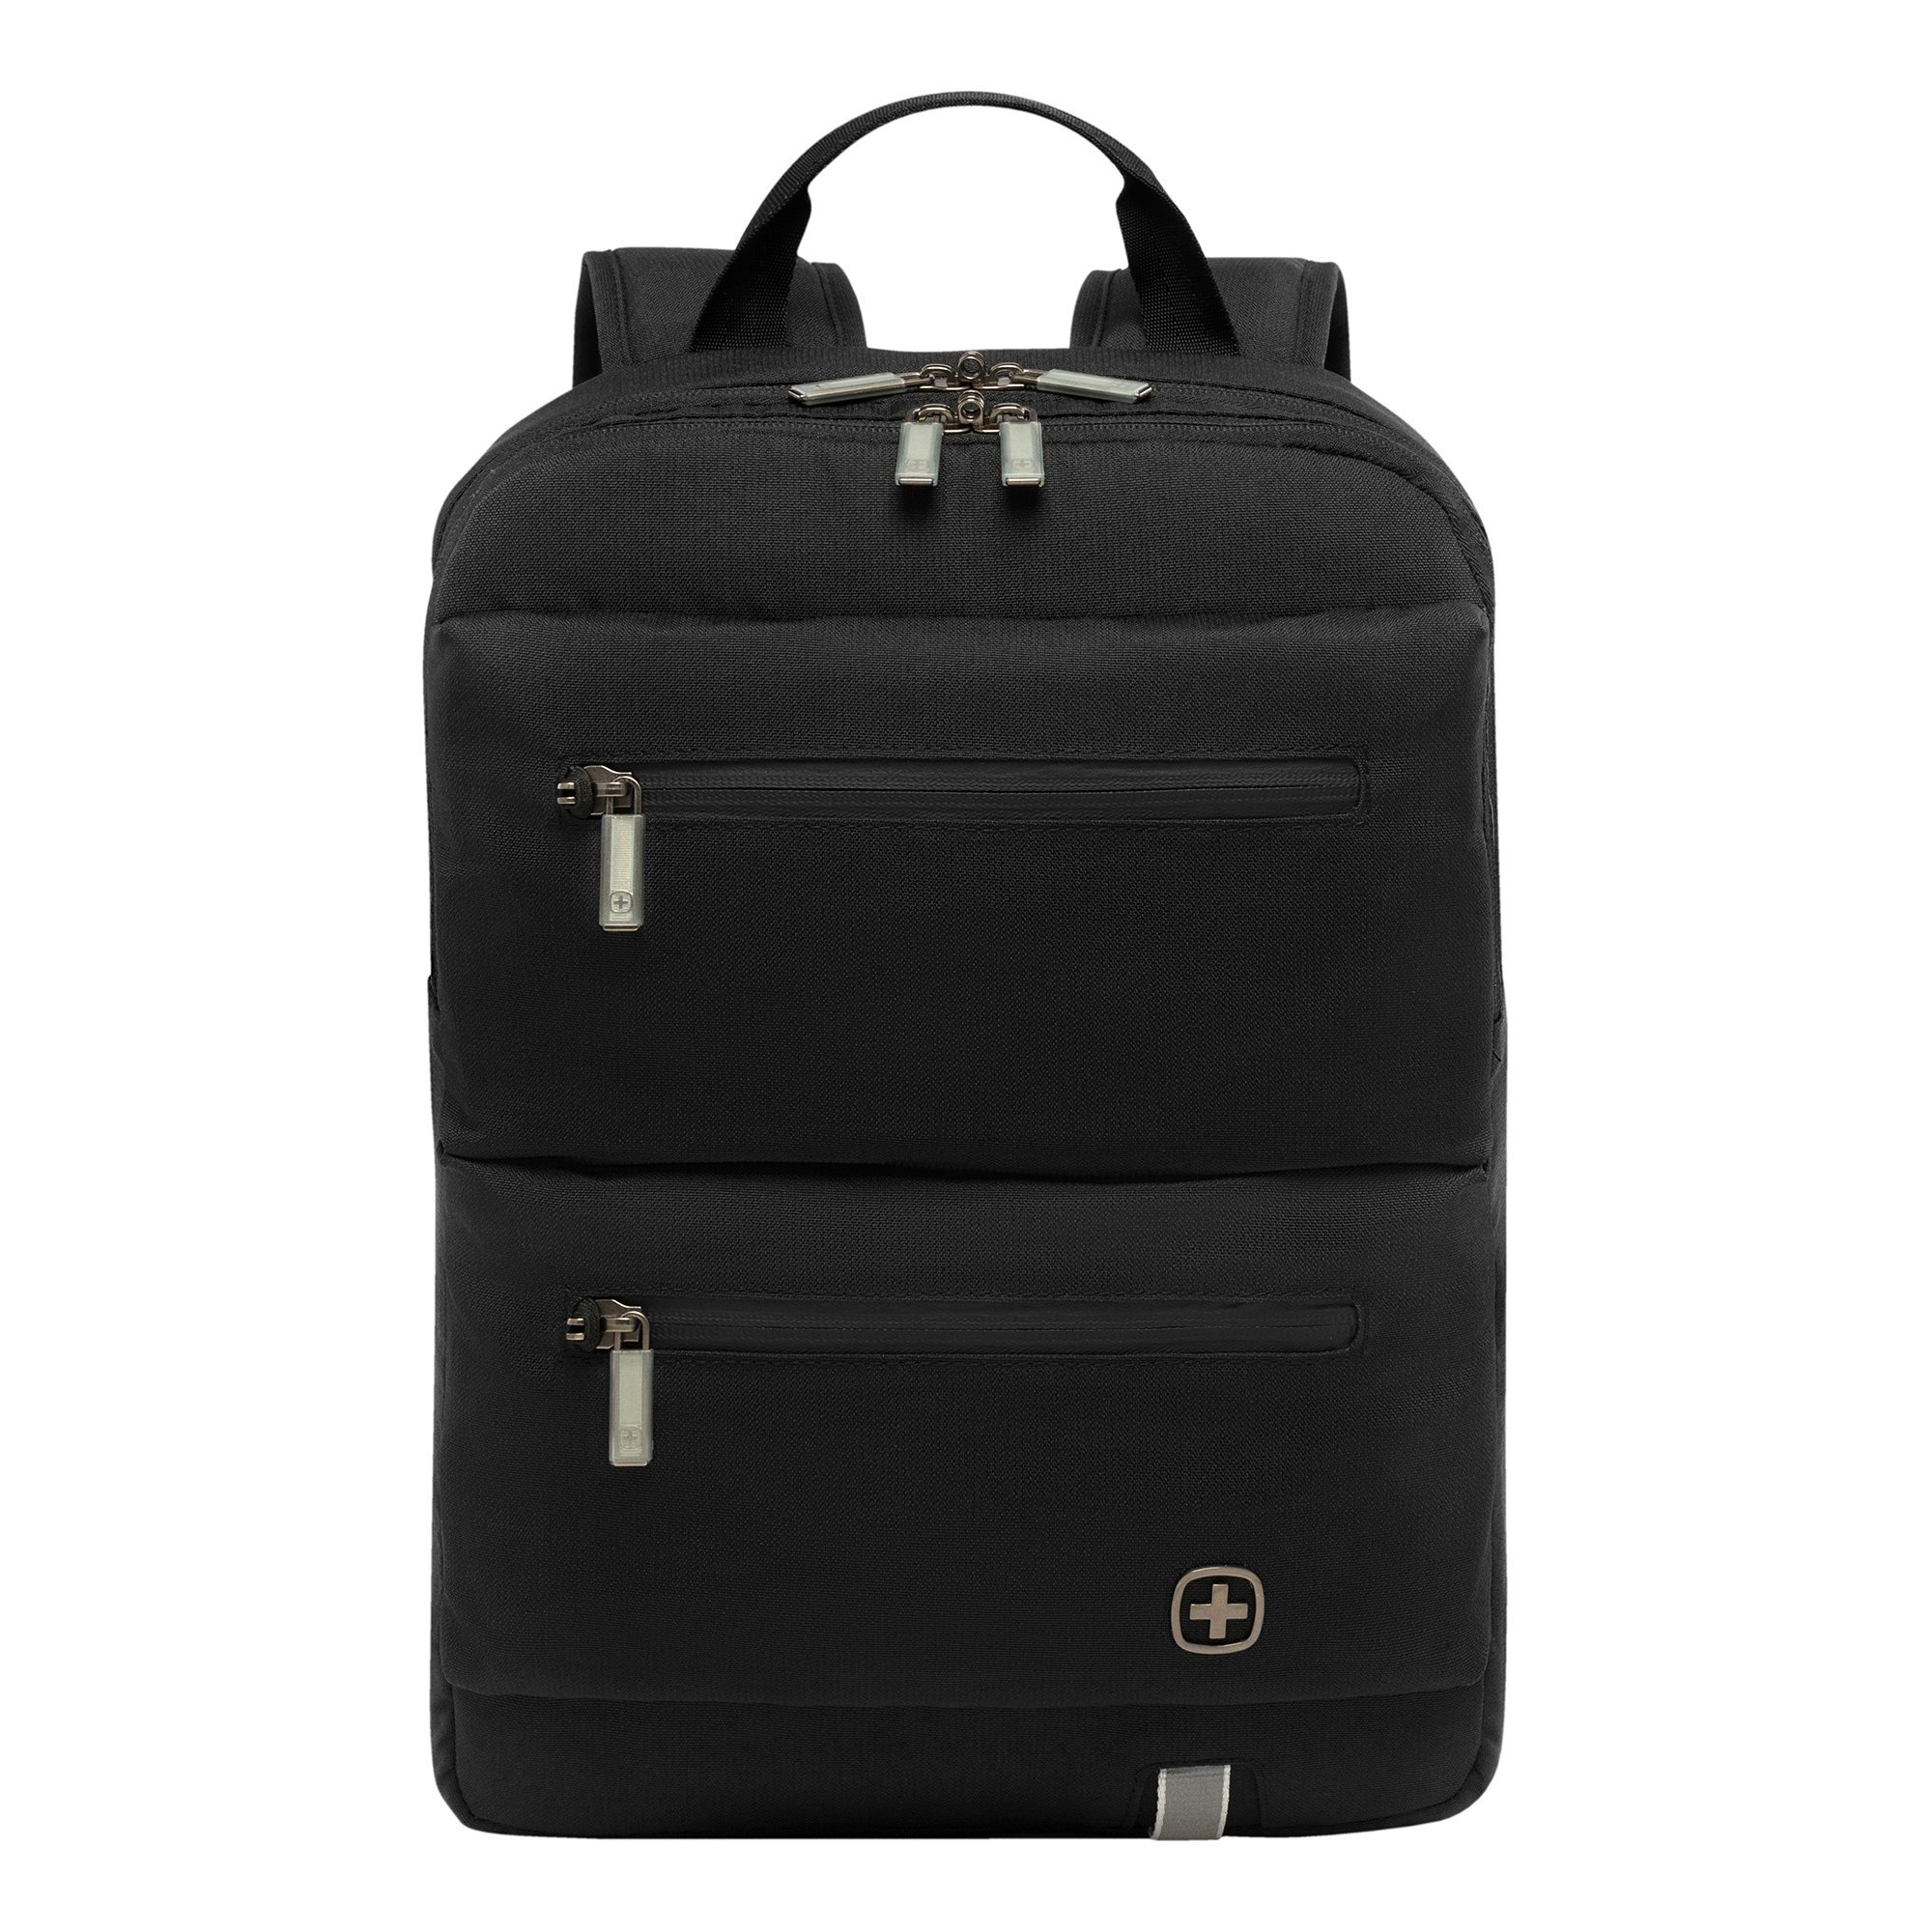 Image of Wenger City Move Backpack